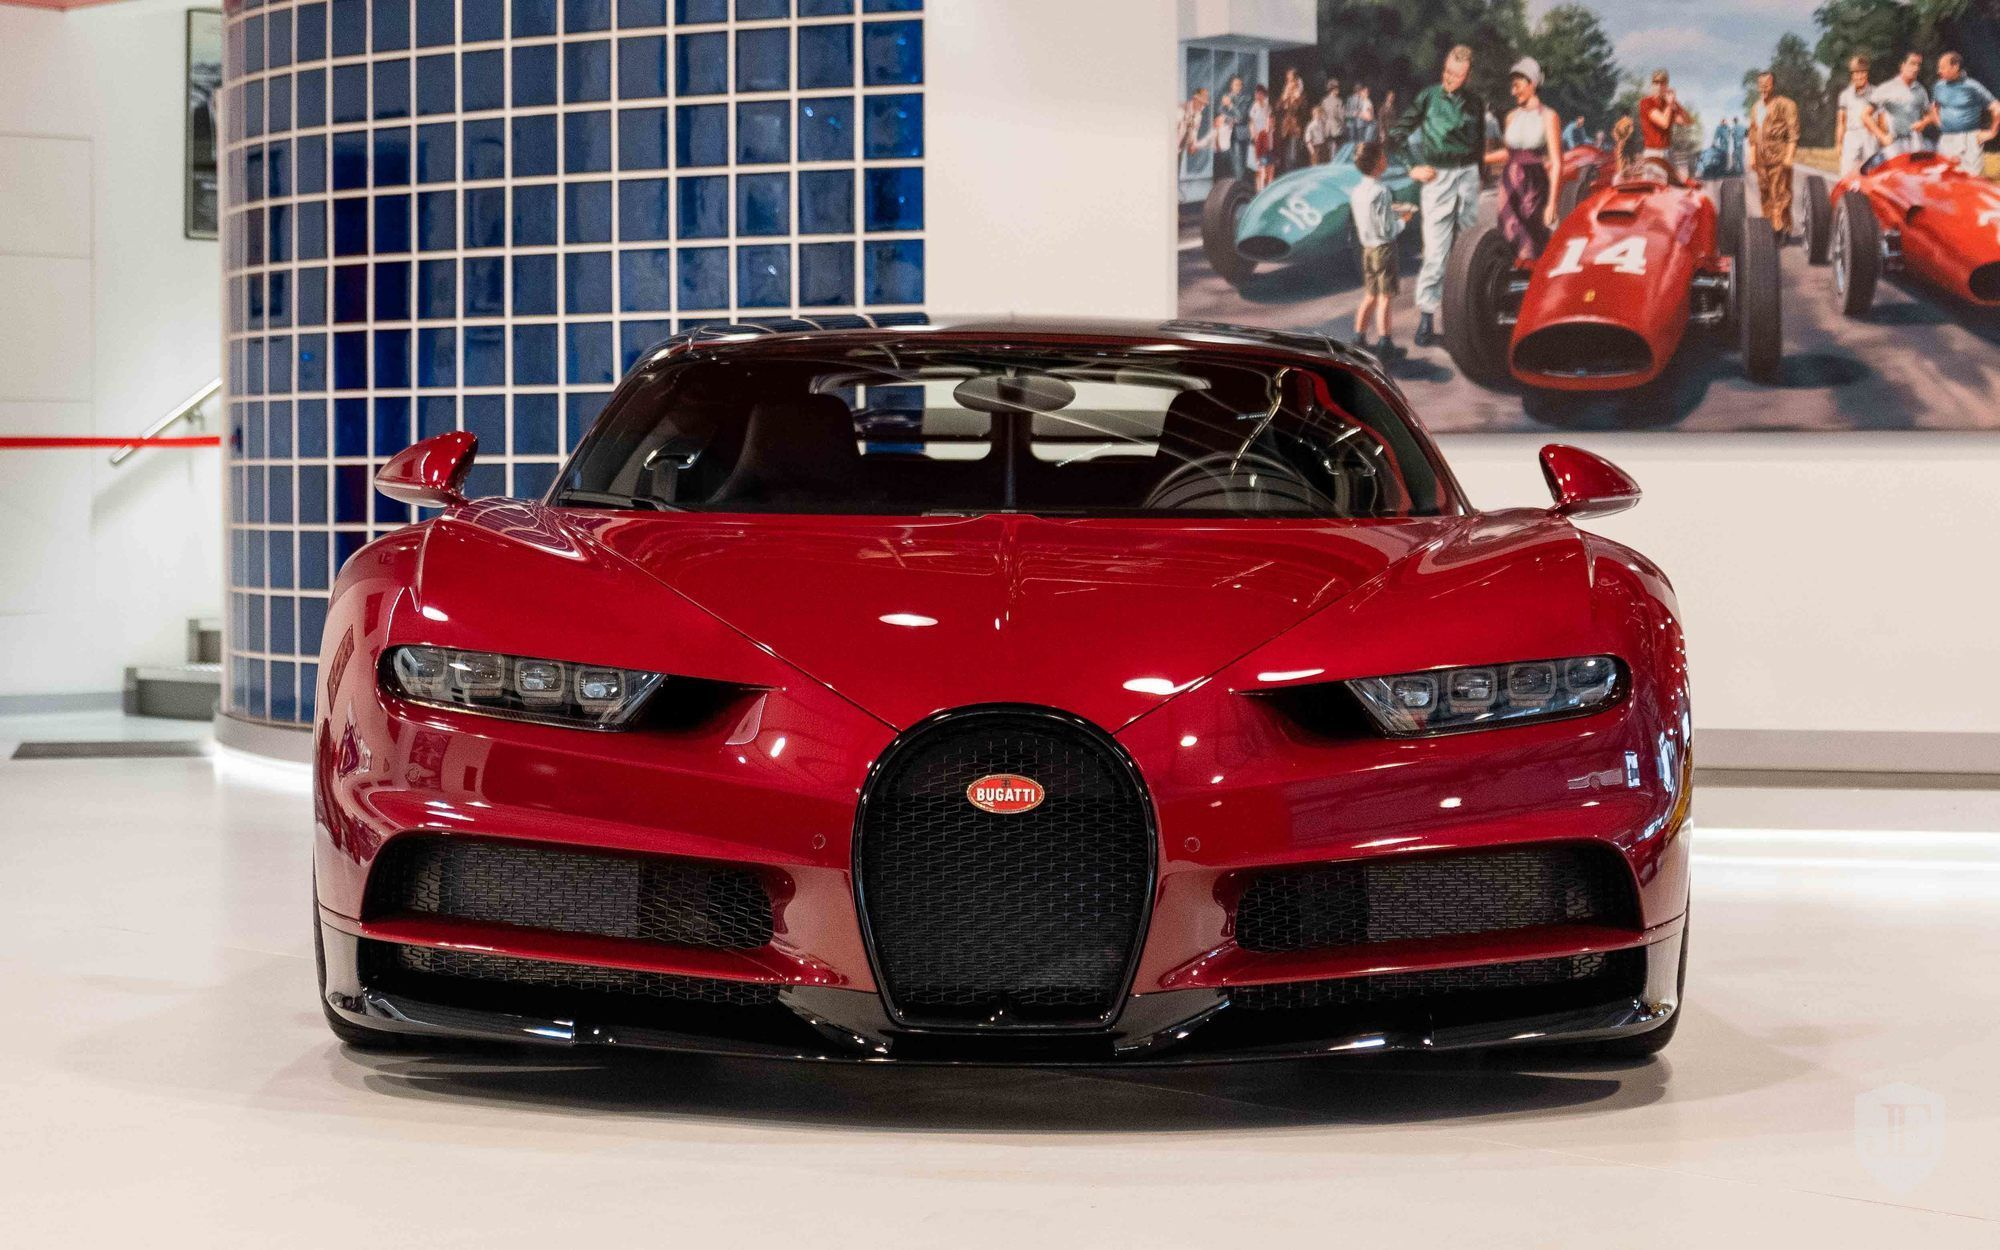 Bugatti_Chiron_for_sale_0002